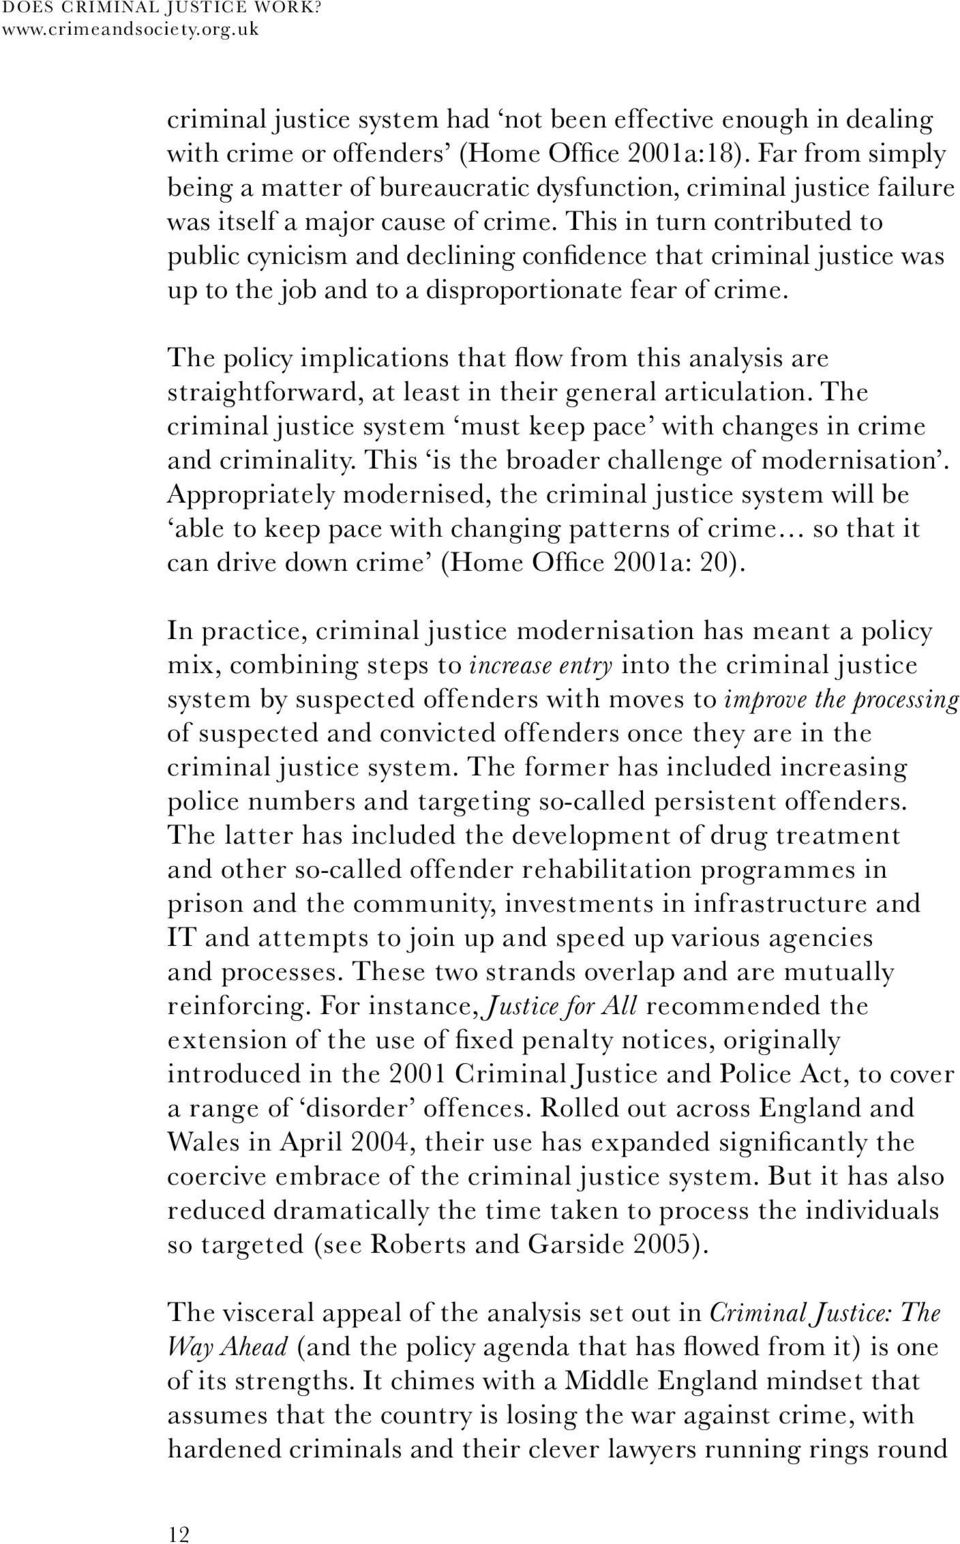 This in turn contributed to public cynicism and declining confidence that criminal justice was up to the job and to a disproportionate fear of crime.